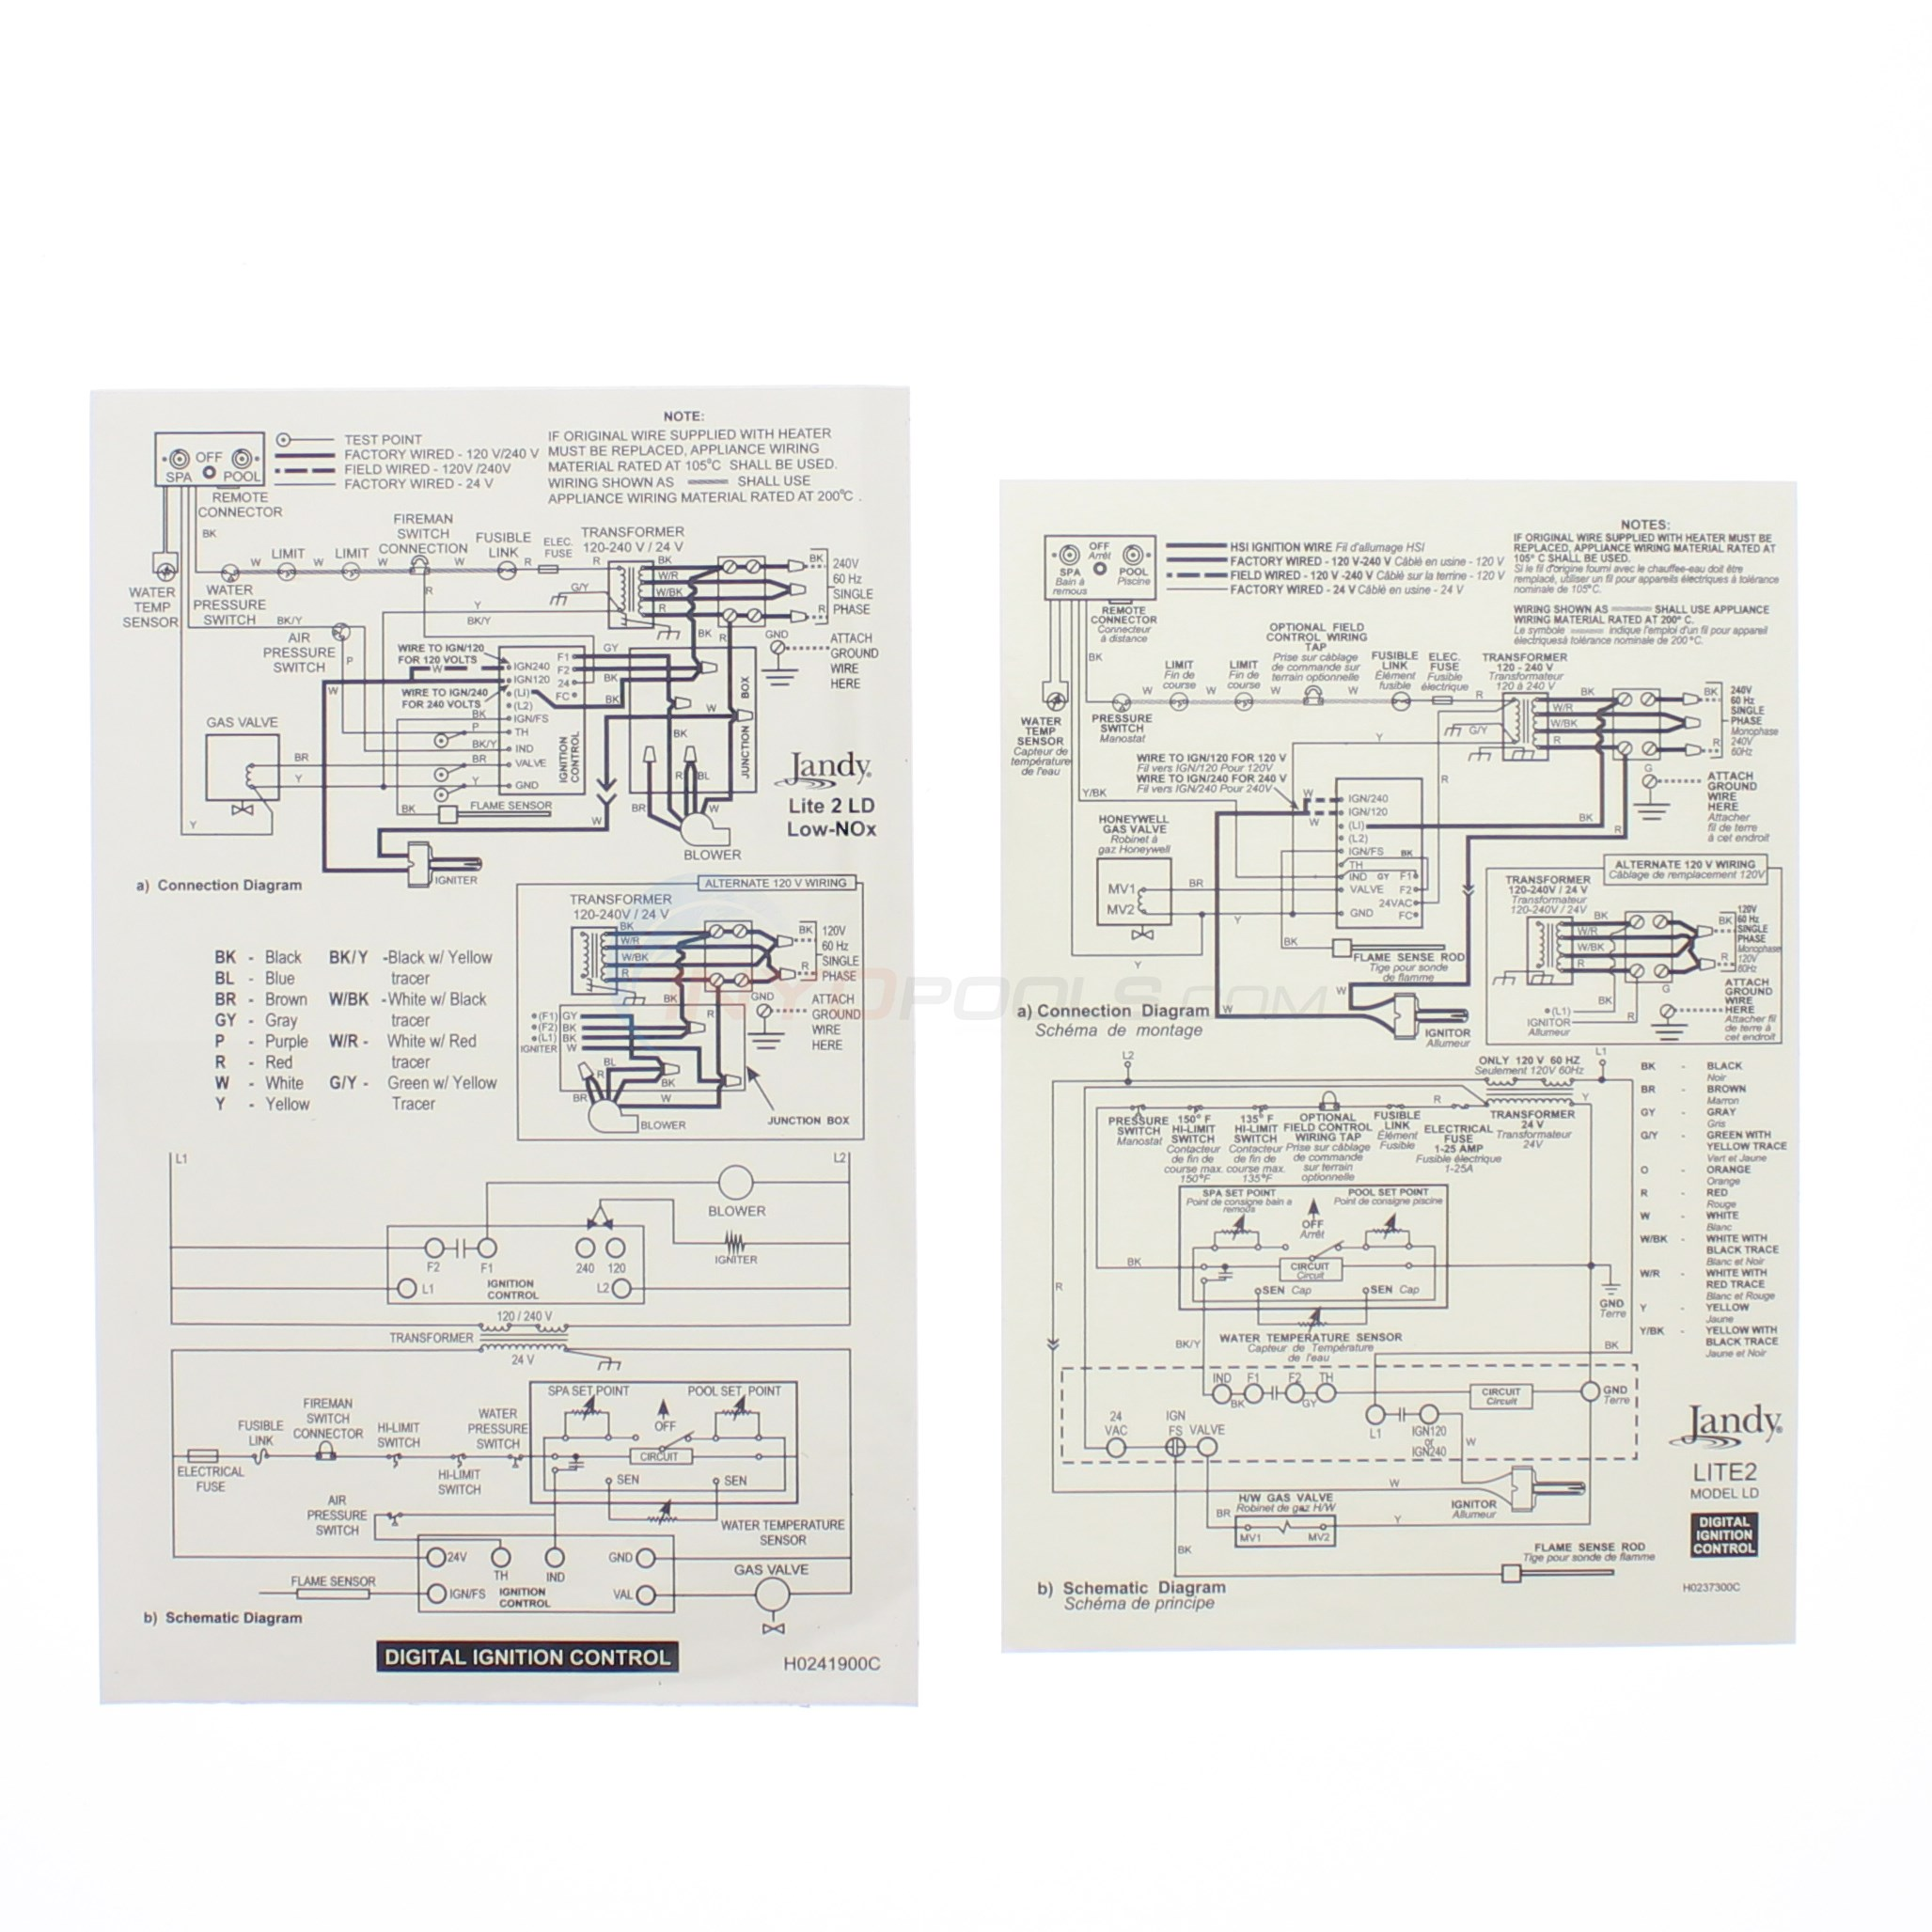 zodiac 6200 0301?format=jpg&scale=both&anchor=middlecenter&autorotate=true&mode=pad&width=650&height=650 zodiac ignition control assembly (r0408100) inyopools com fenwal ignition module wiring diagram at creativeand.co